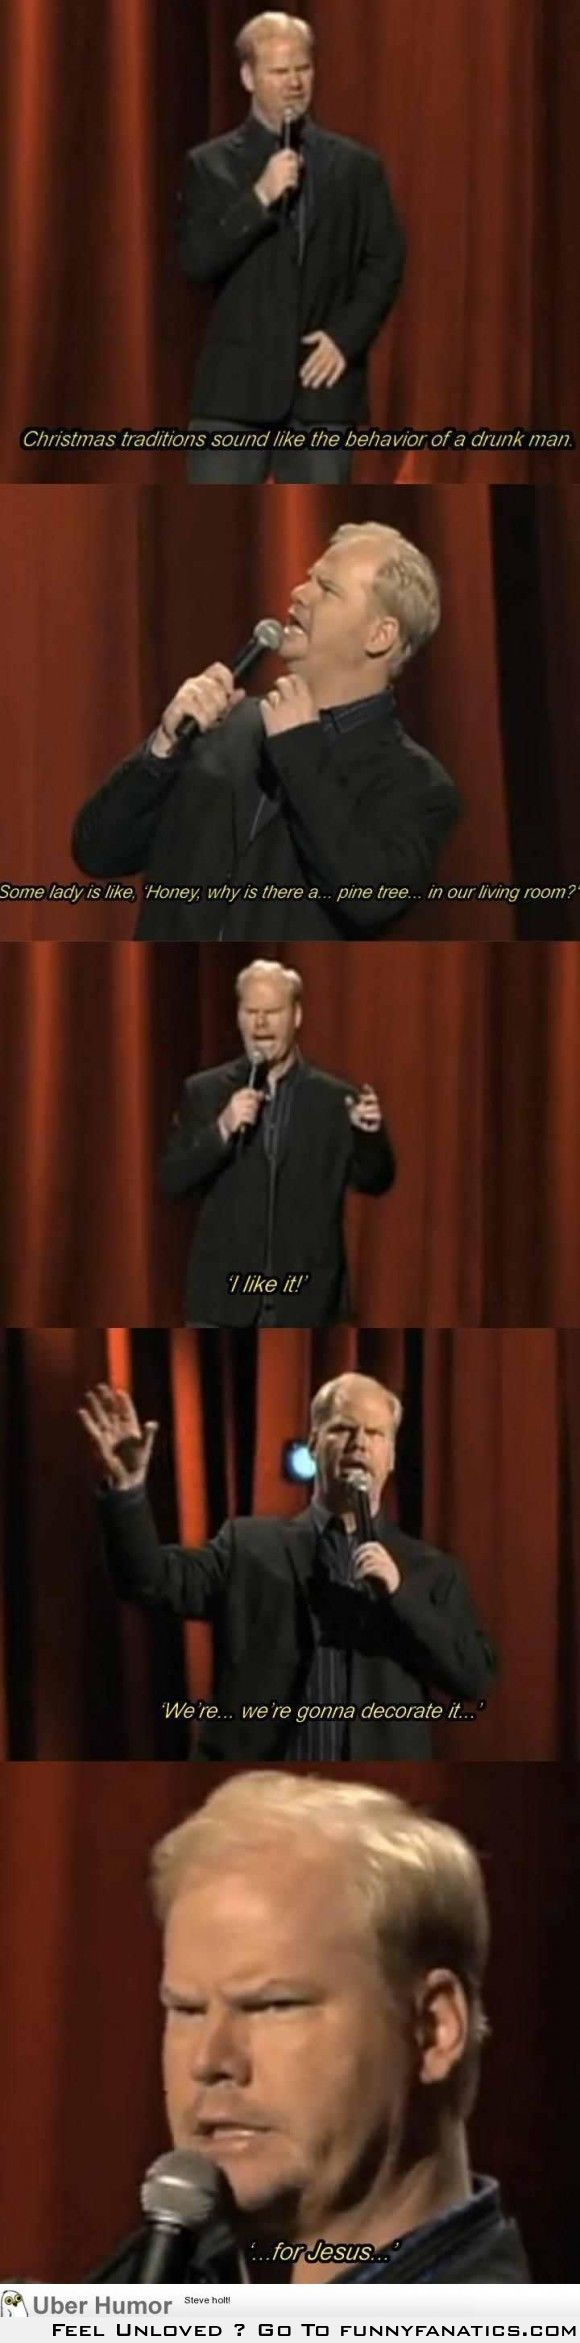 Love Jim Gaffigan. And the fact that he recognizes the ridiculousness of Christmas.